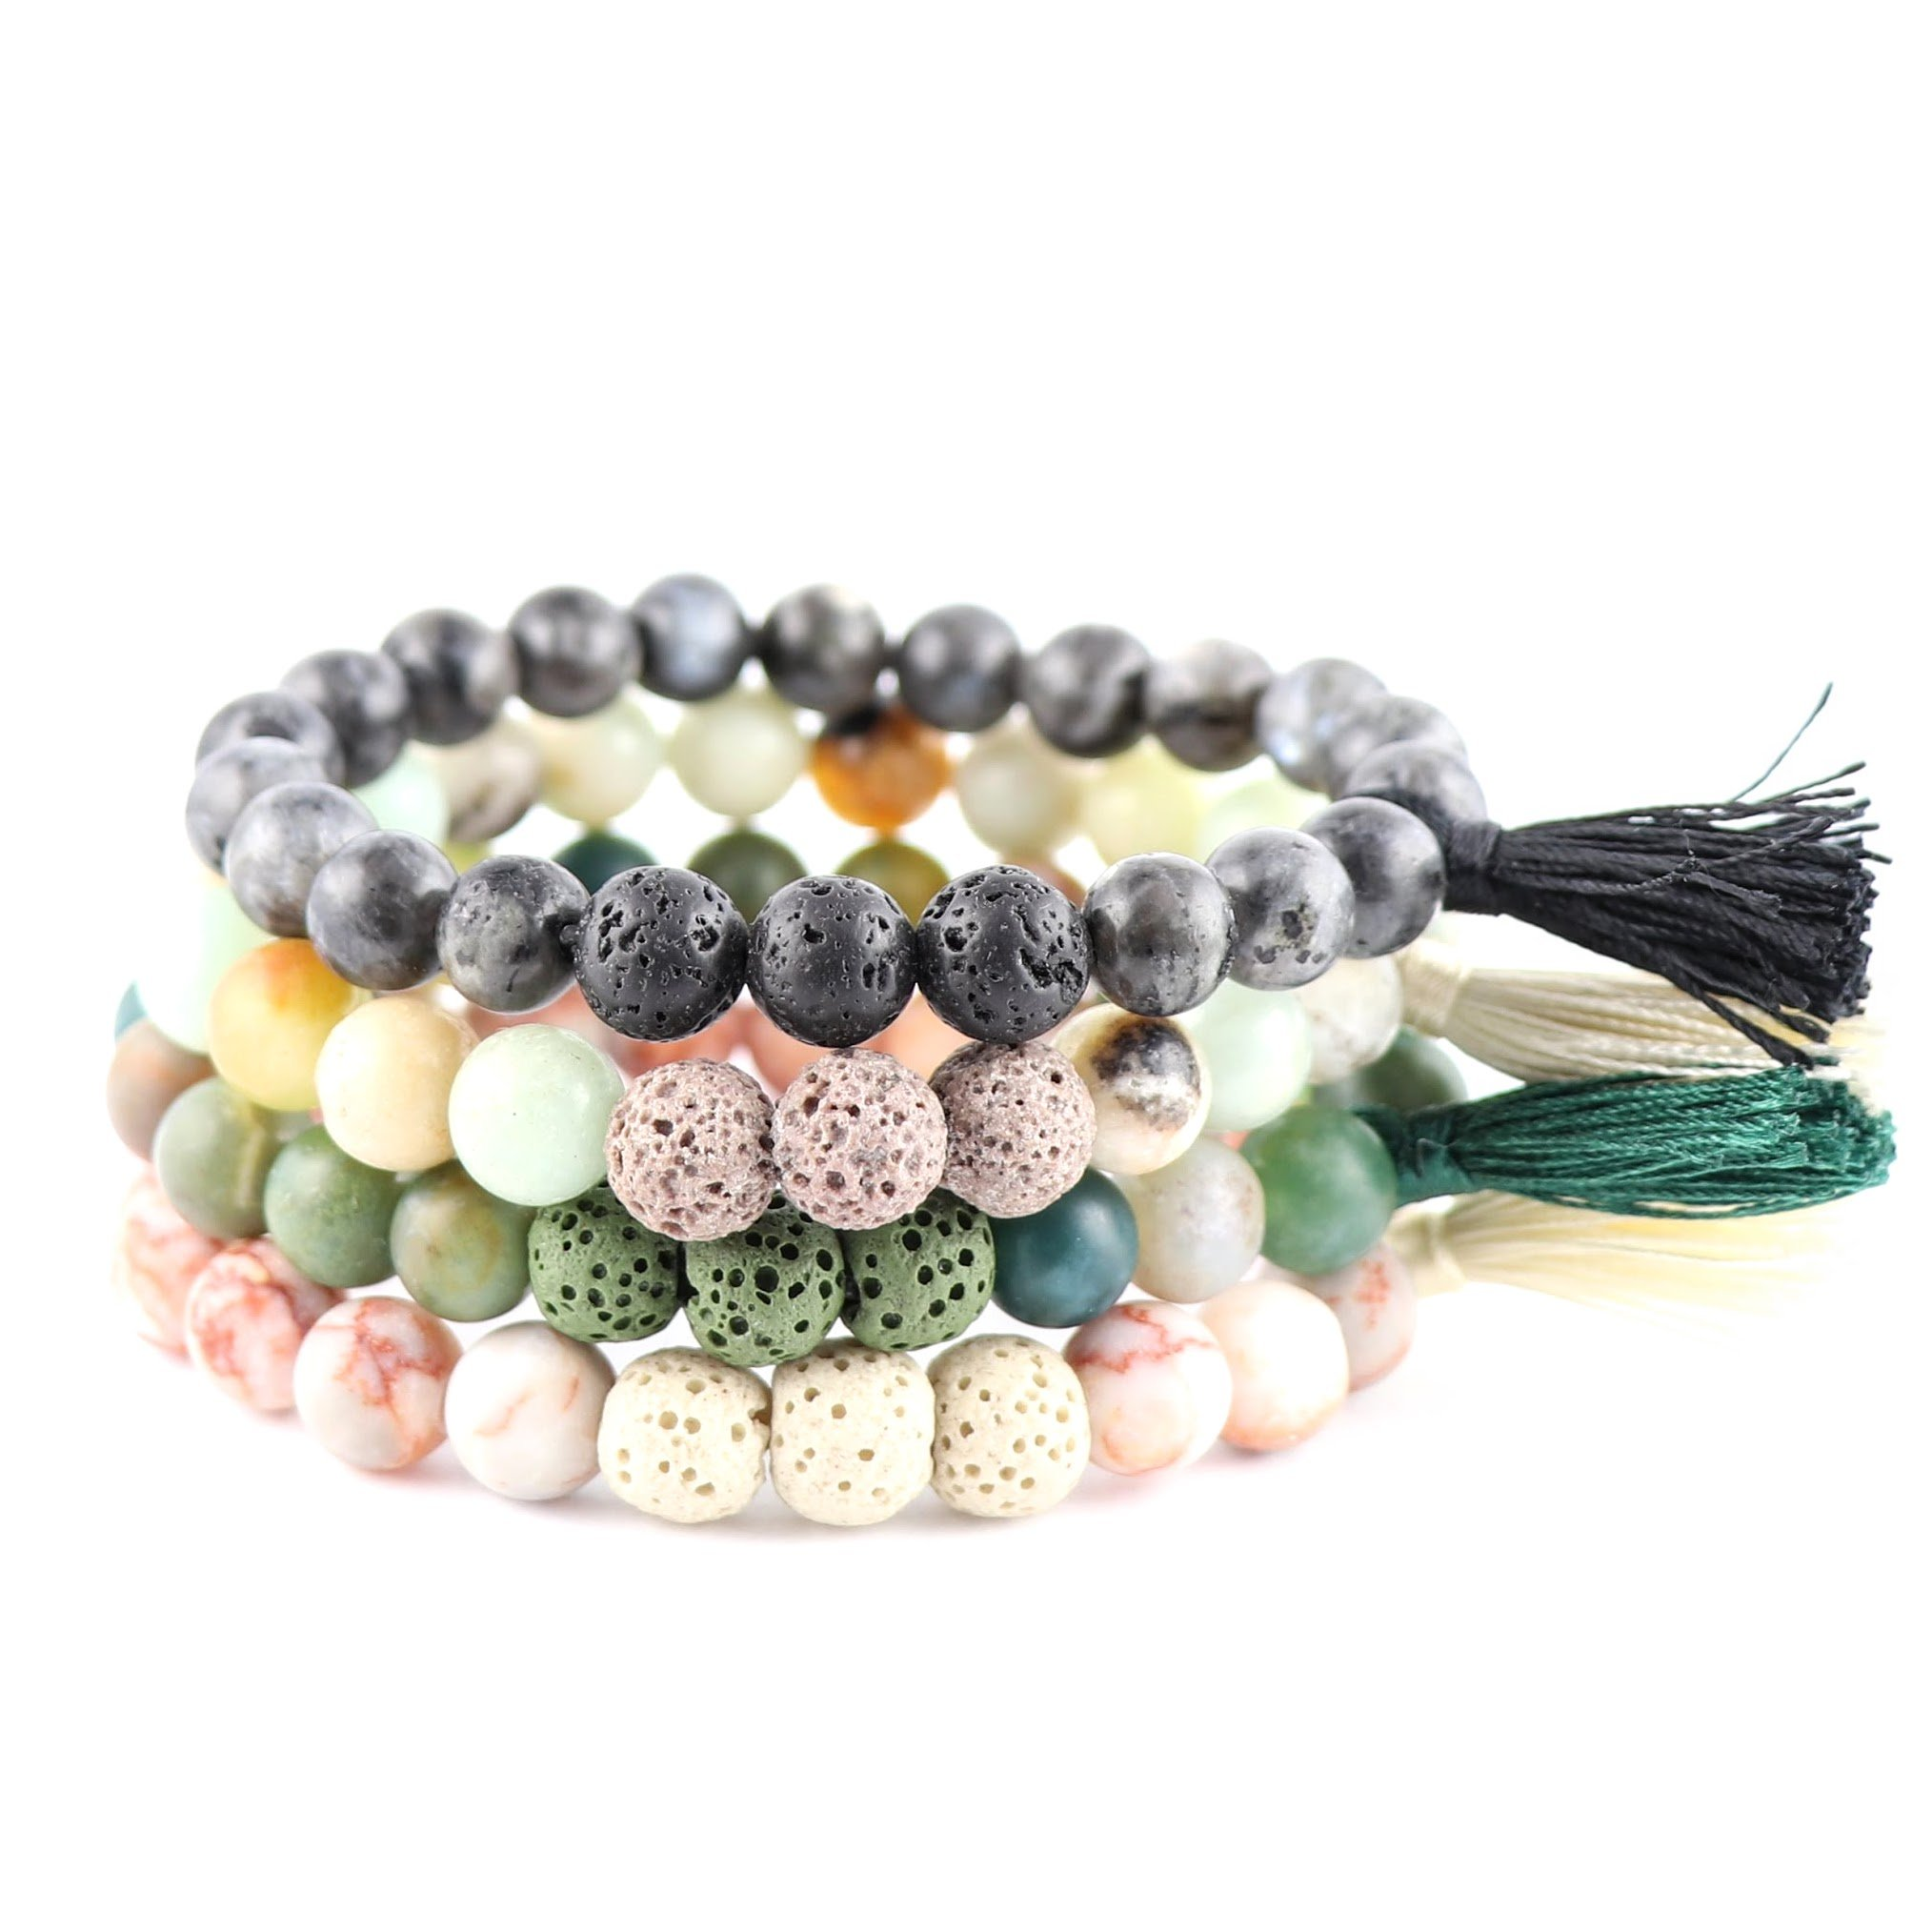 New Lava Rock Natural Stone Essential Oil Diffuser Tassel Bracelet | Distance Friendship Mala Tibetan Praying Beaded Bracelet | Gift Jewelry Box (Small-Medium - Heal & Let Go)